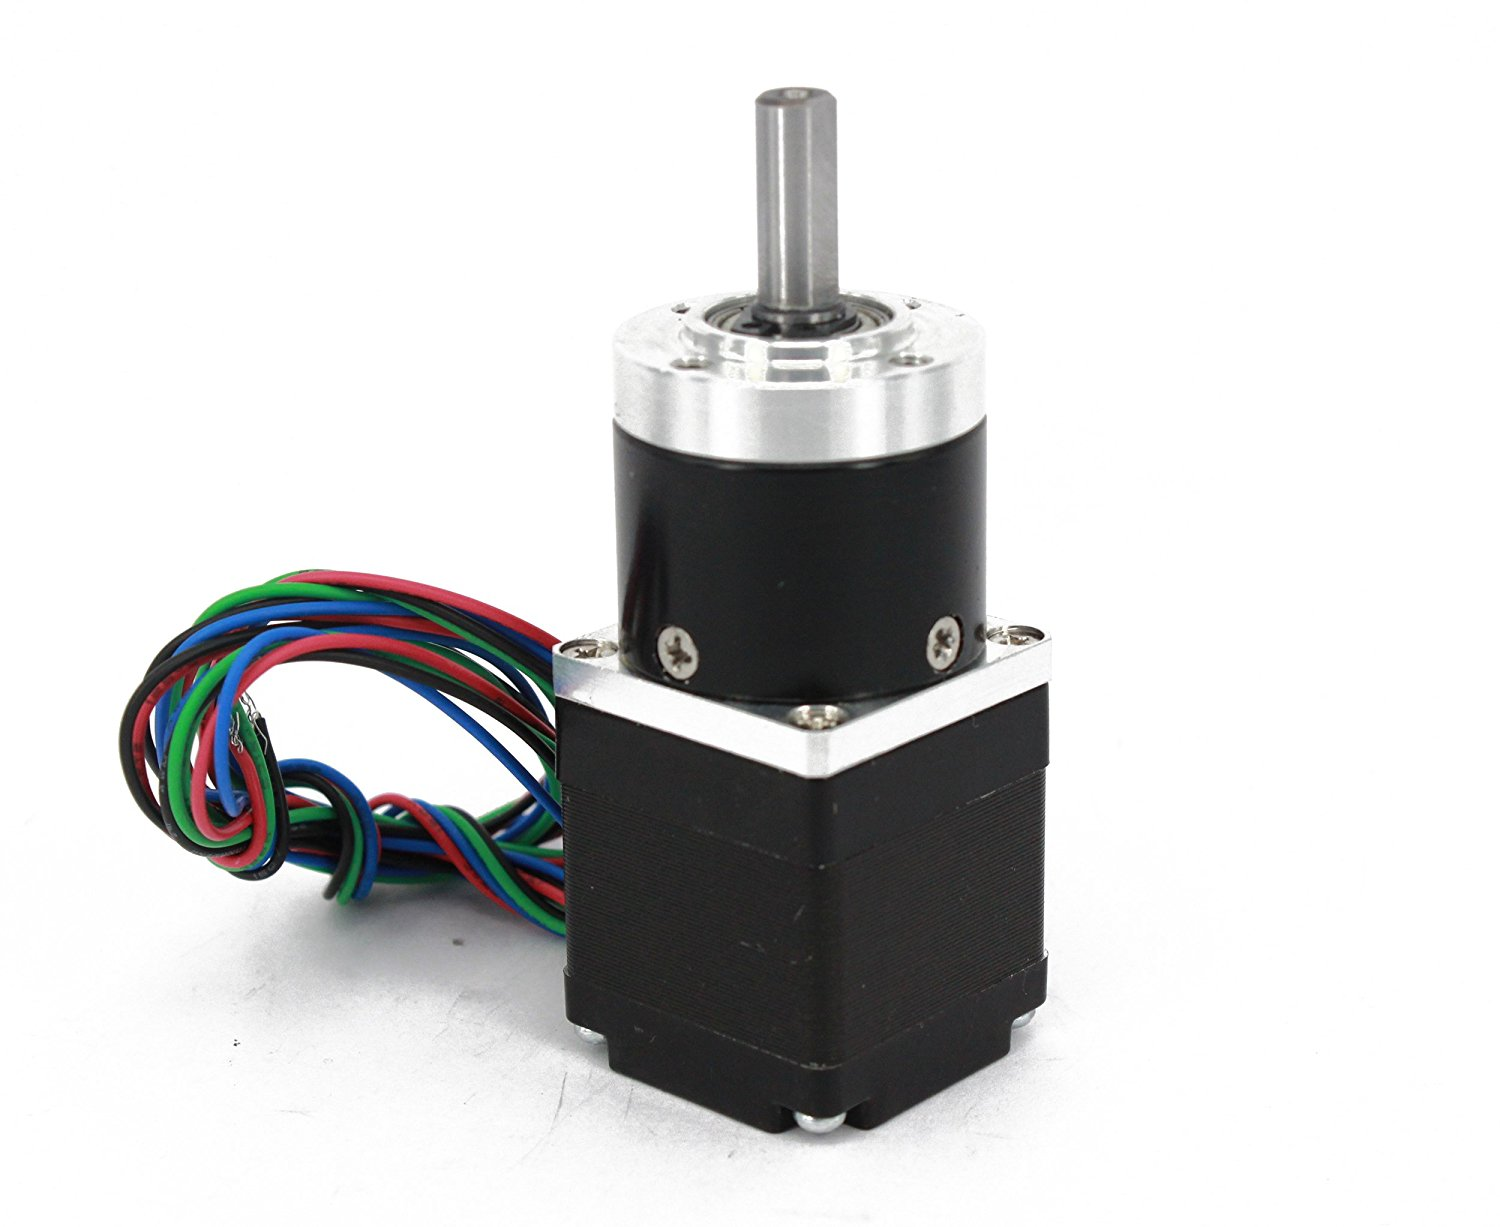 Gear Stepper Motor Nema 11 L=30mm with Planetary Gearbox Ratio 3~4:1 (Ratio 3:1)